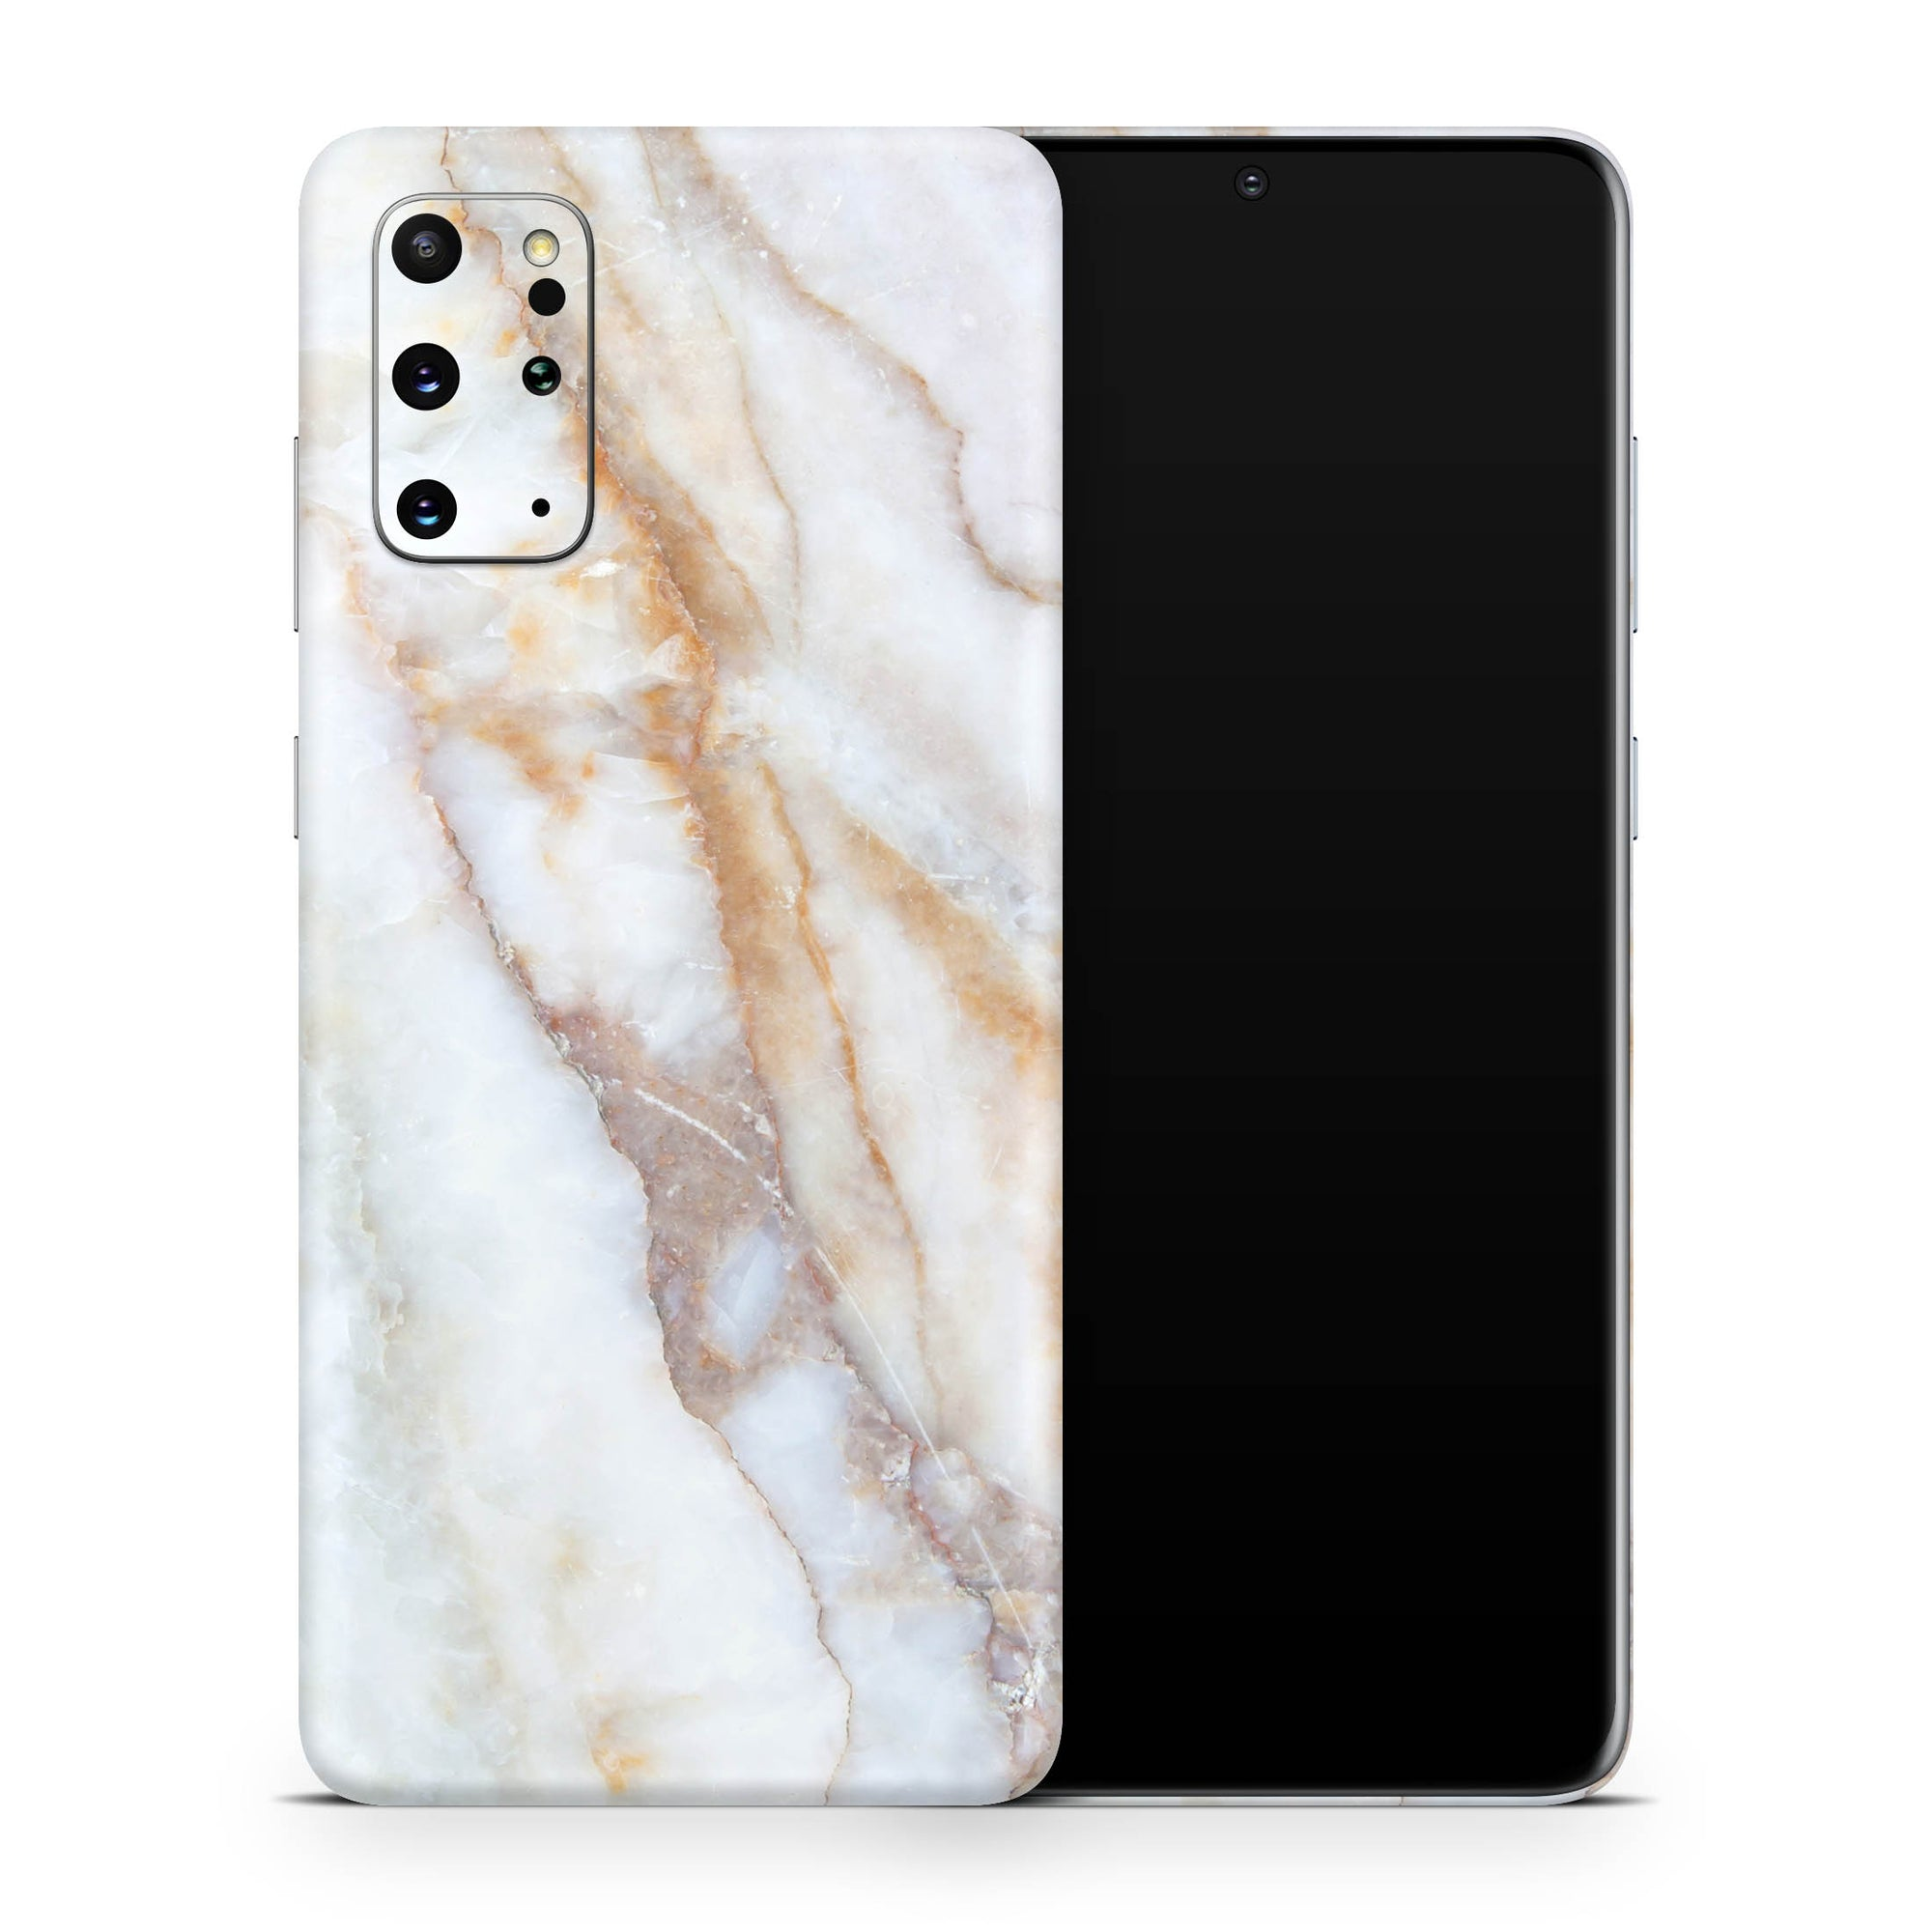 Vanilla Marble Galaxy S20 Ultra Skin + Case-Uniqfind